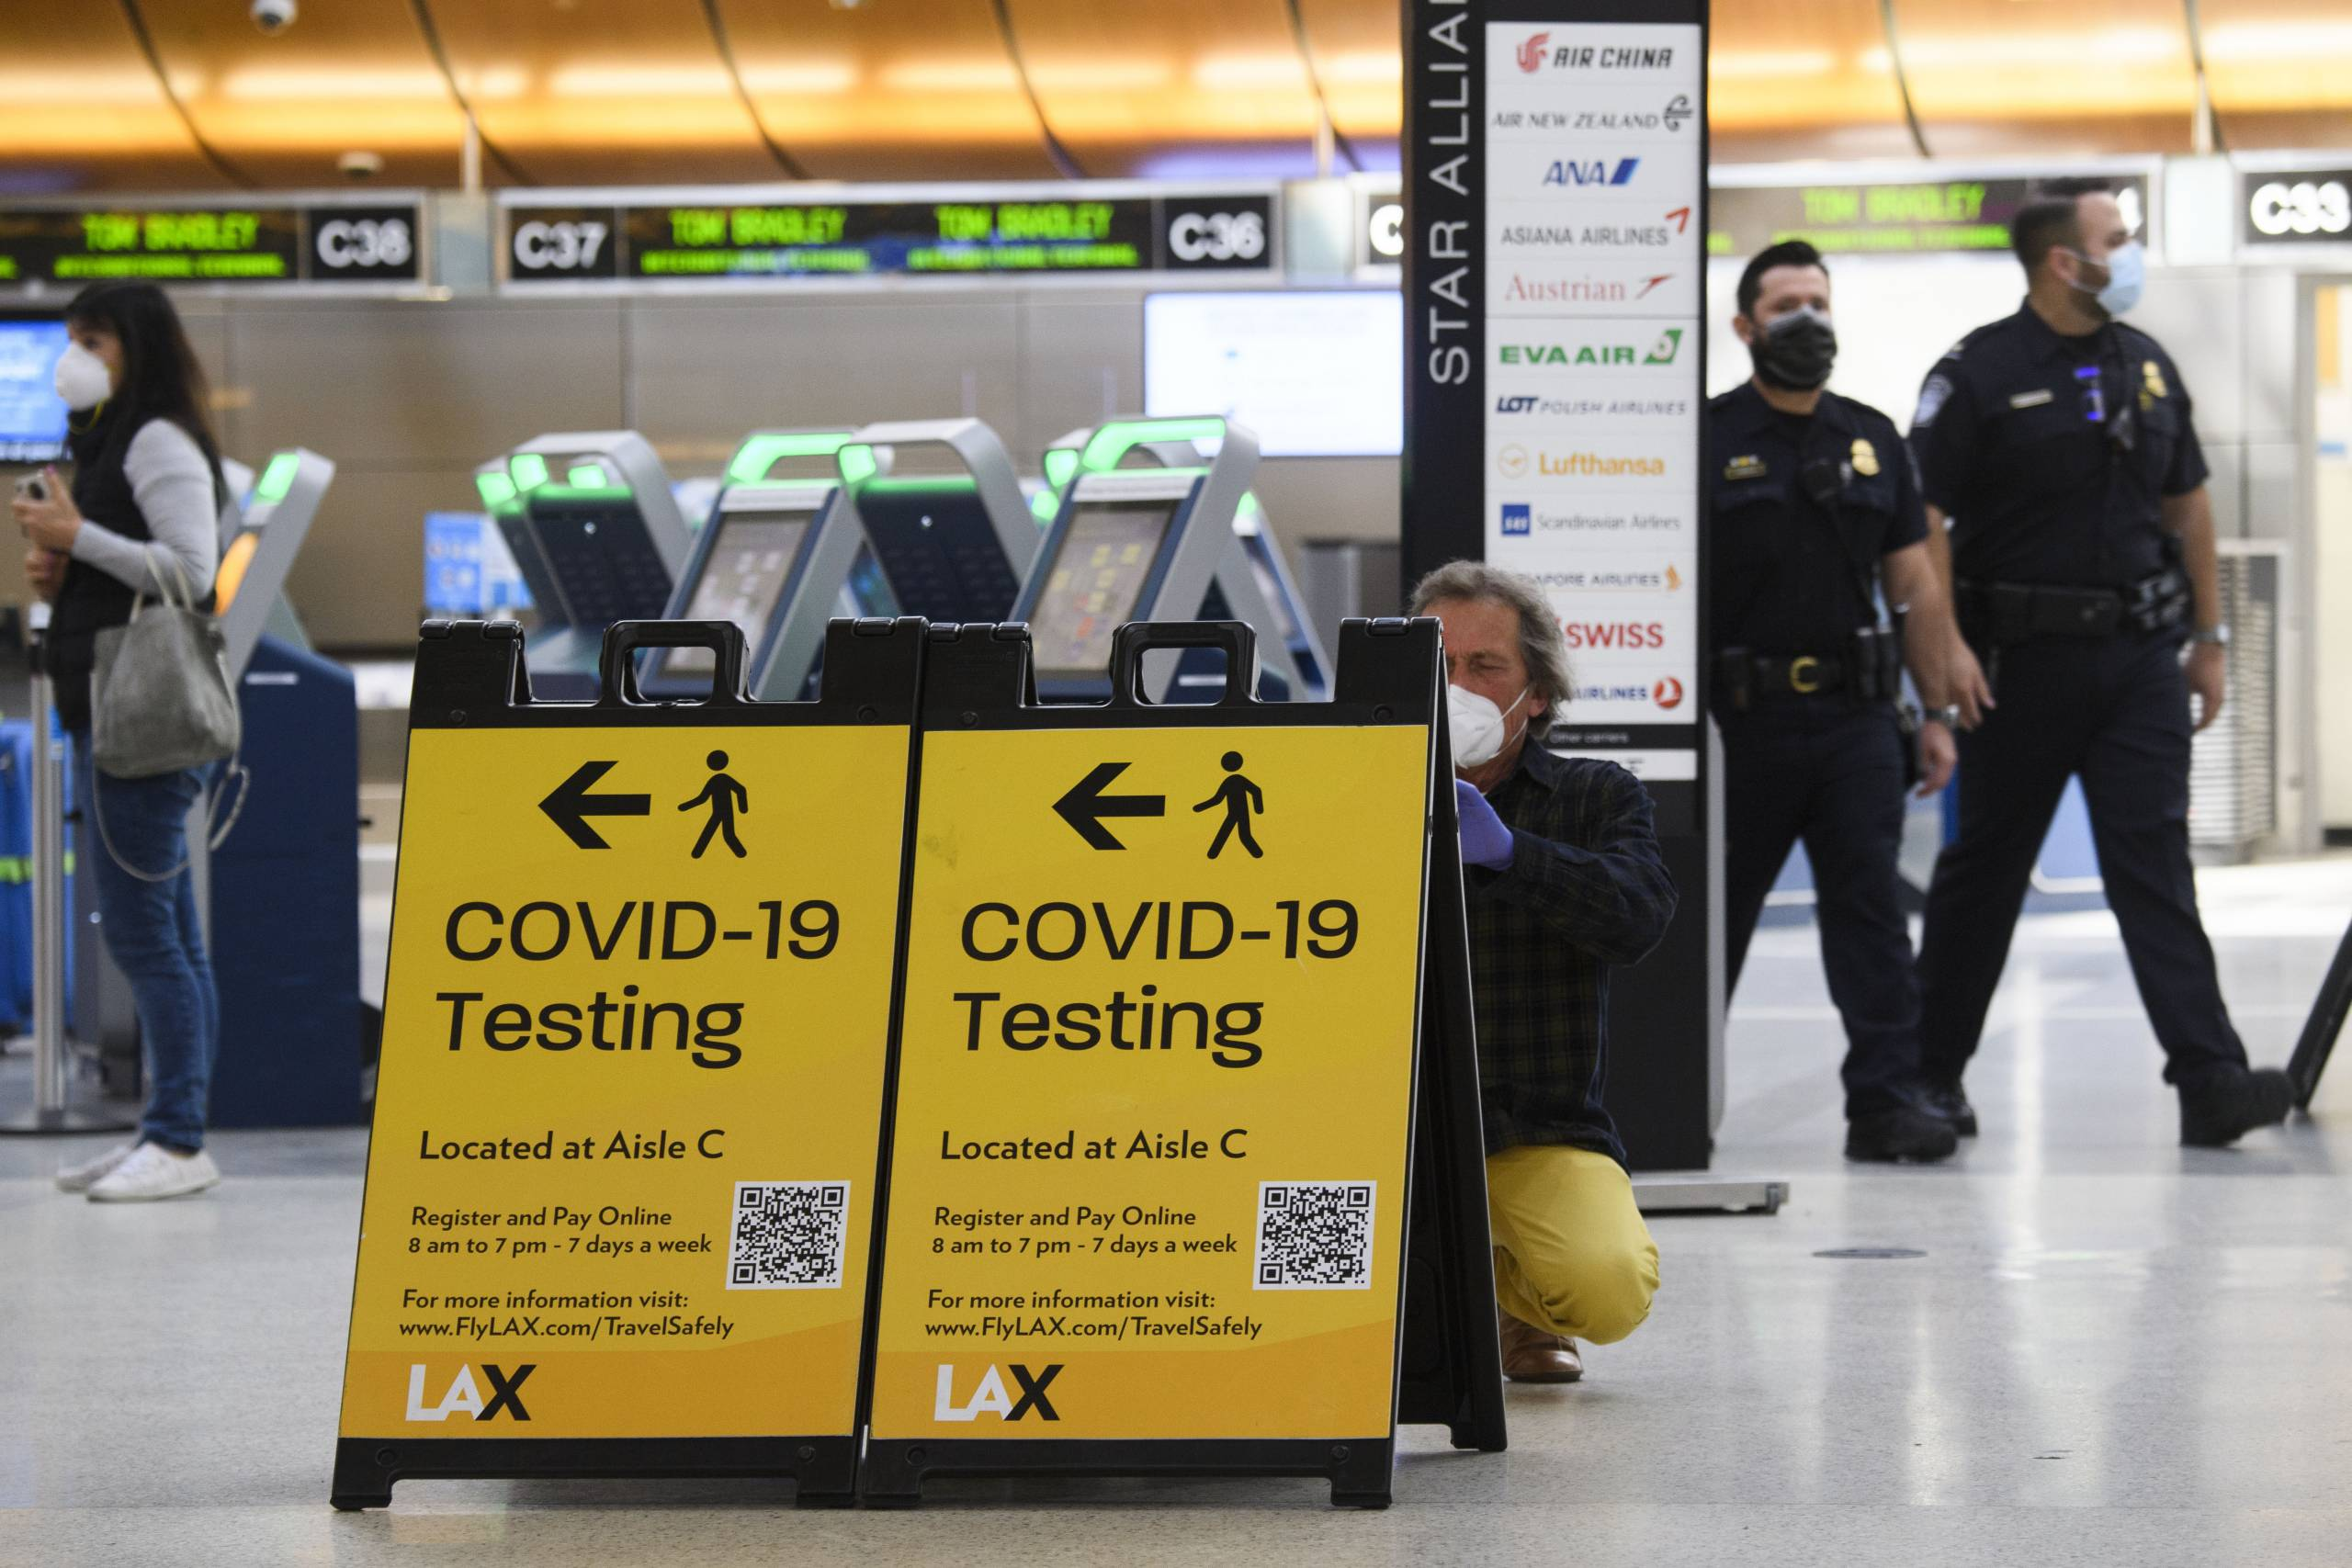 A coronavirus testing sign at Los Angeles International Airport (LAX) on February 4, 2021 in Los Angeles.